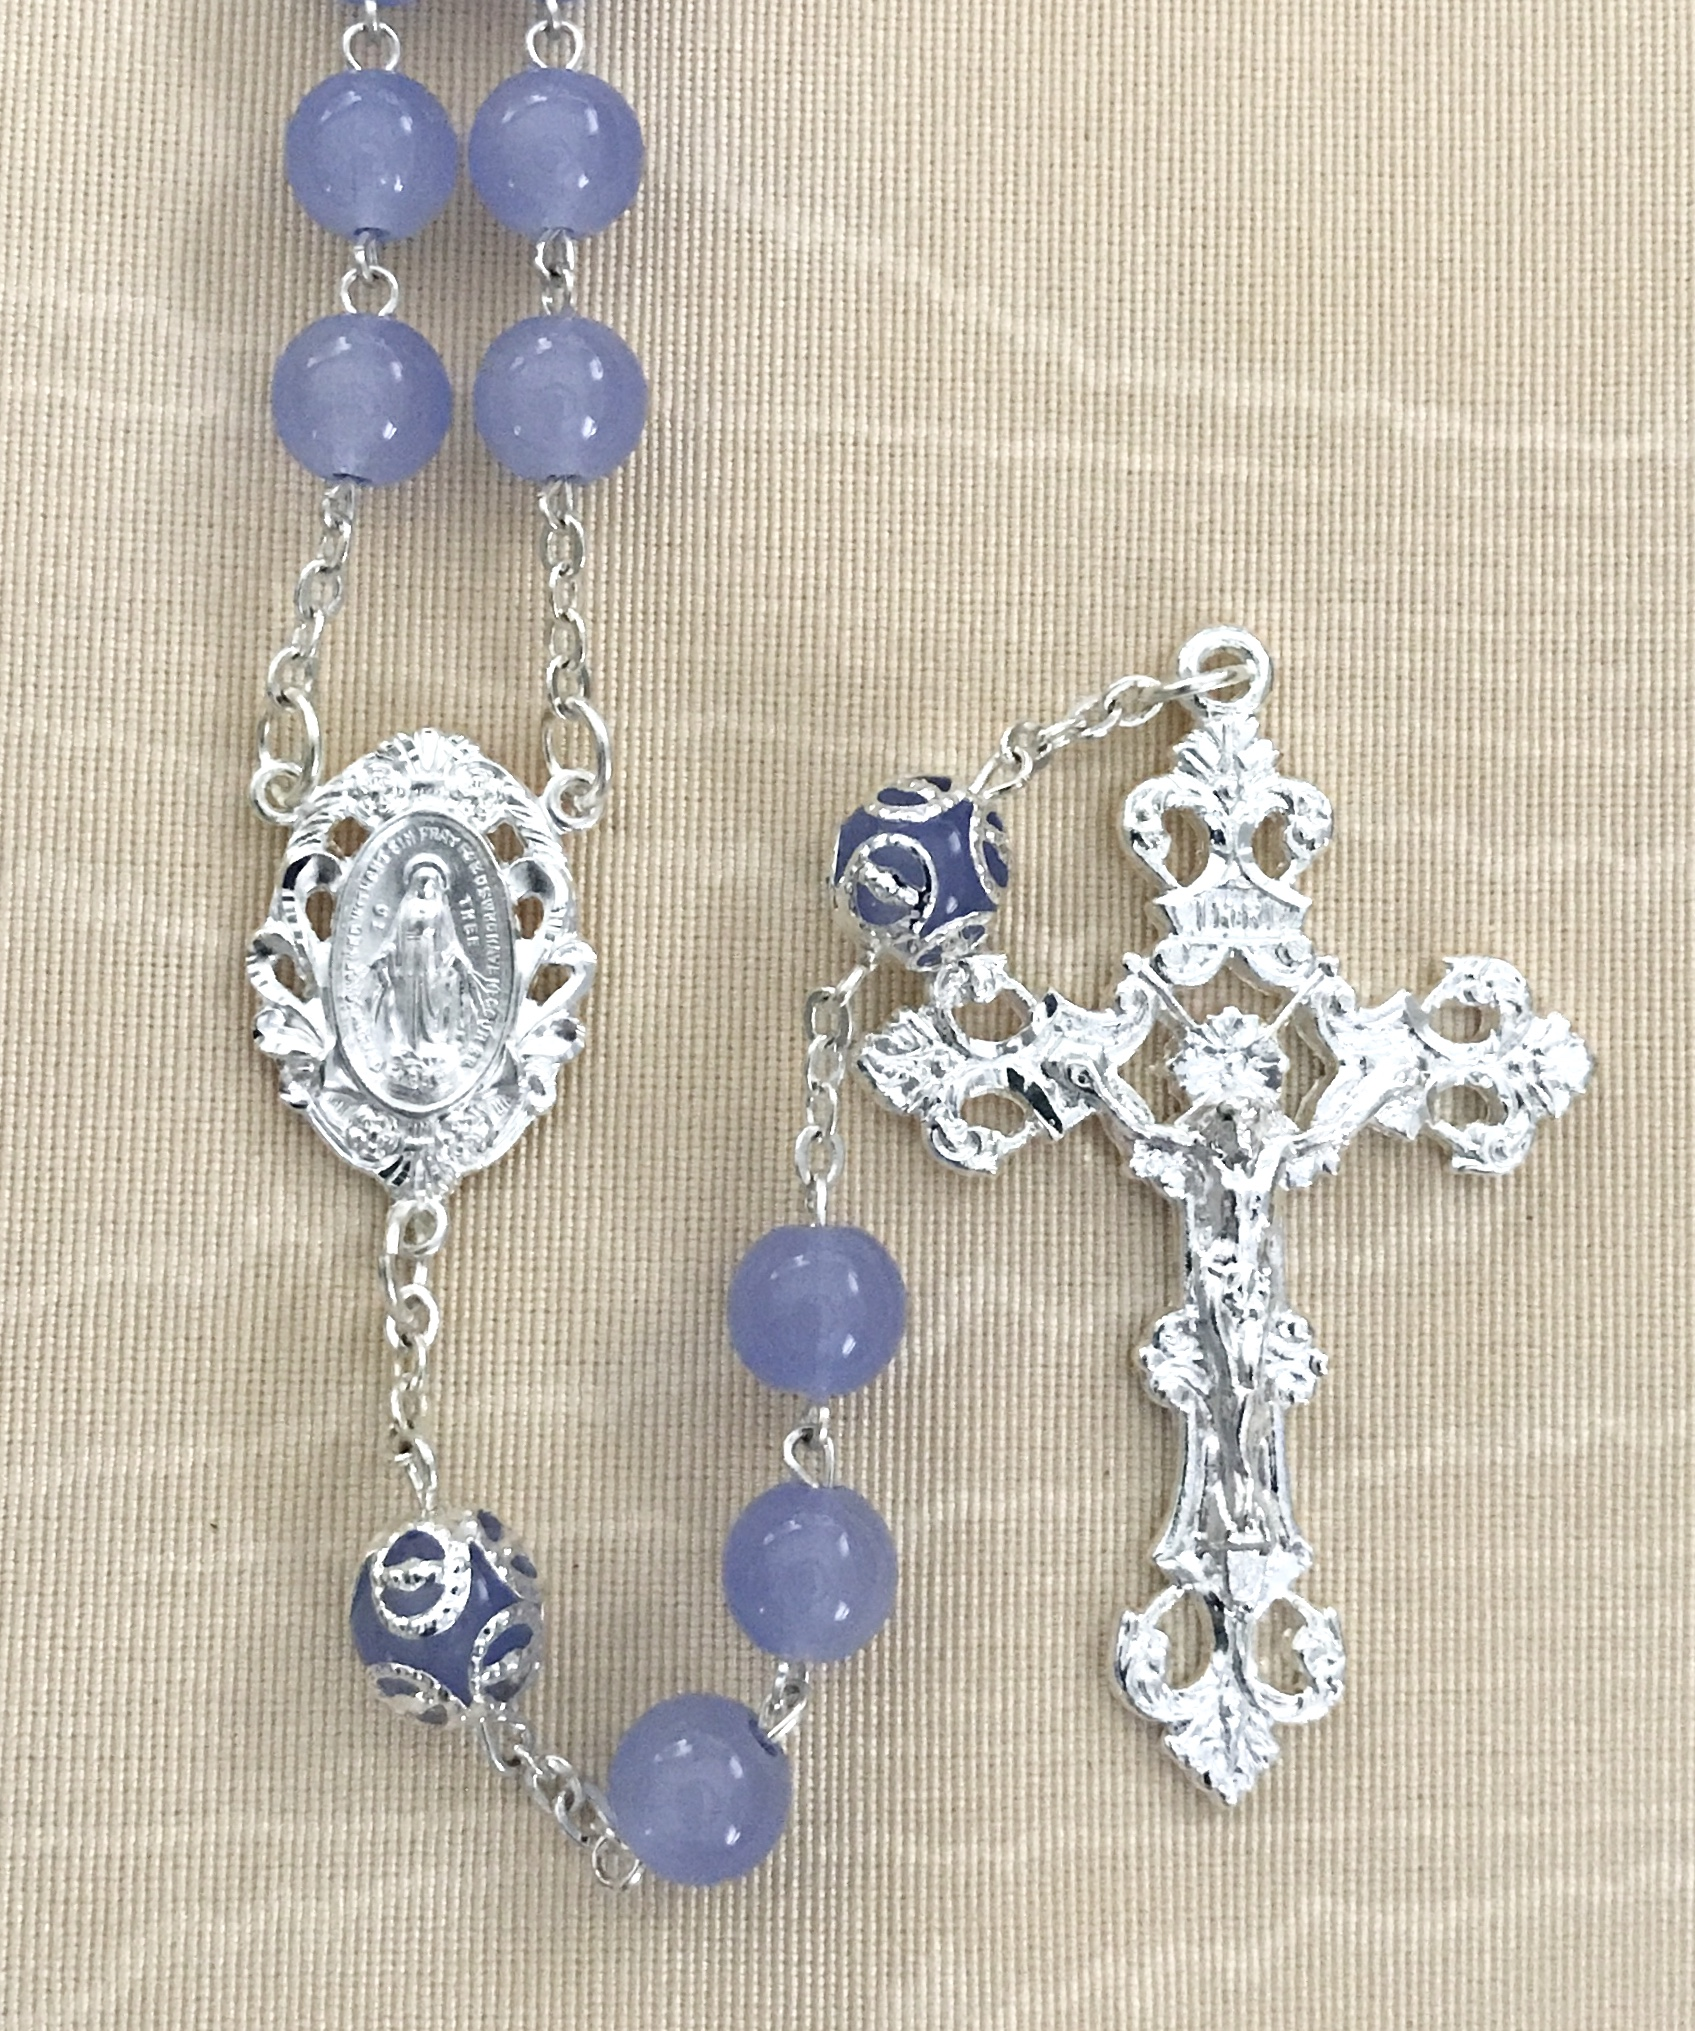 8mm LIGHT SAPPHIRE ROSARY  WITH CAPPED OUR FATHER BEADS AND STERLING SILVER PLATED CRUCIFIX AND CENTER GIFT BOXED